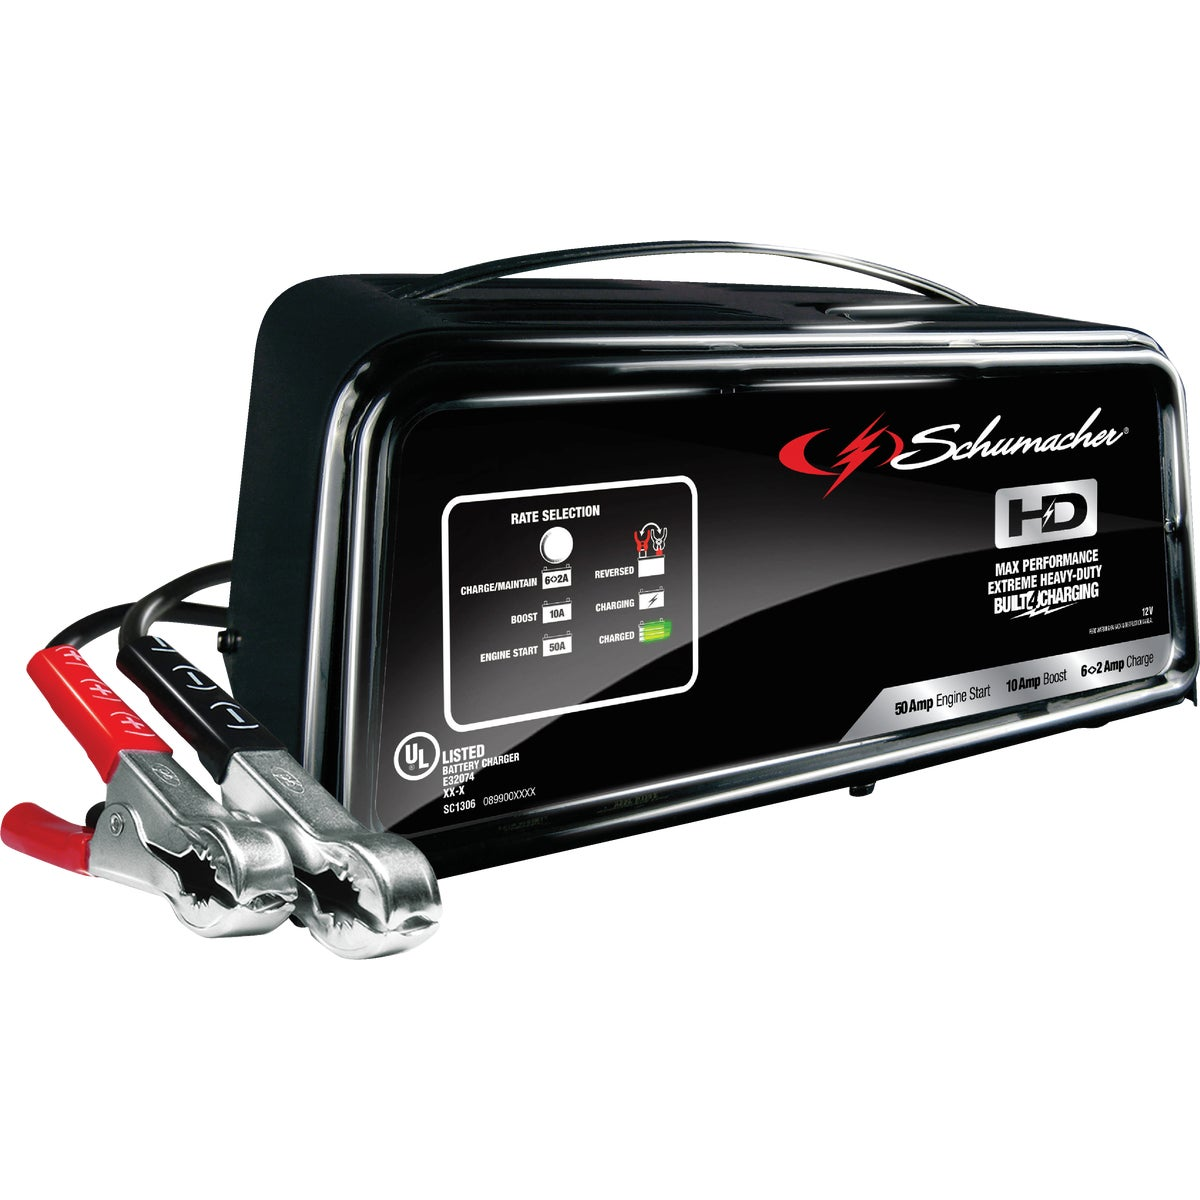 STARTER/BATTERY CHARGER - SE-5212A-CA by Schumacher Electric